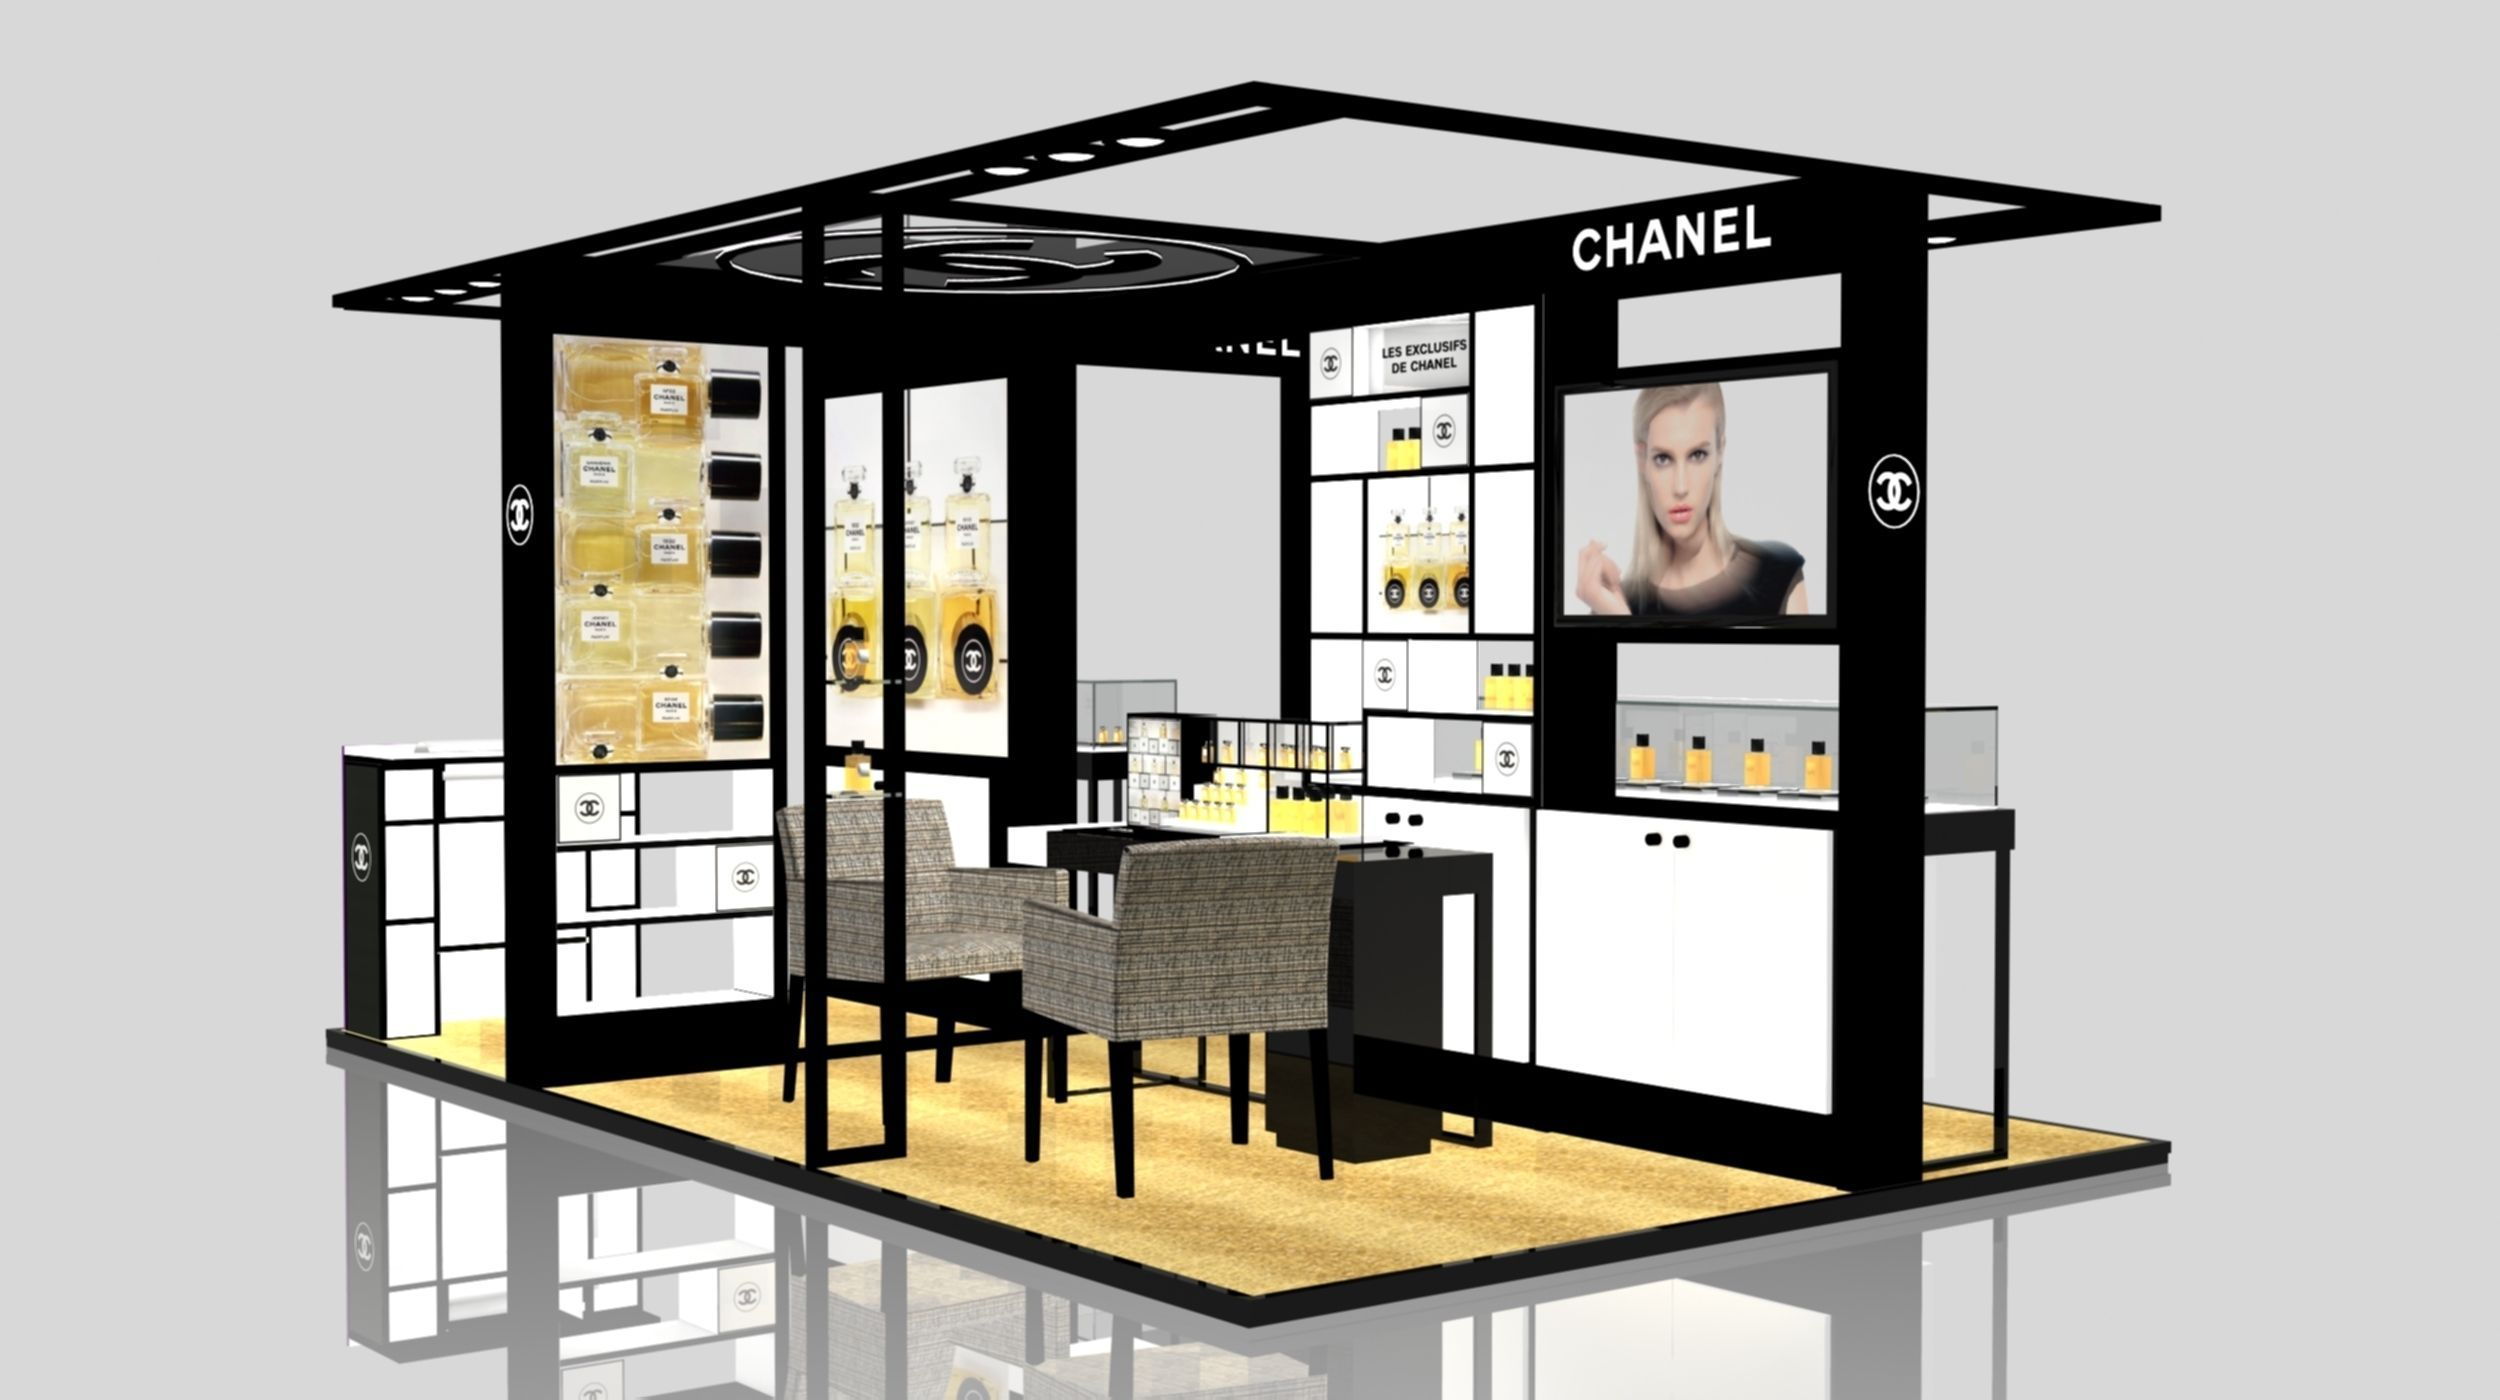 Exhibition Stand 3d Model Sketchup : Exhibition stand of chanel in gum d model sldprt sldasm